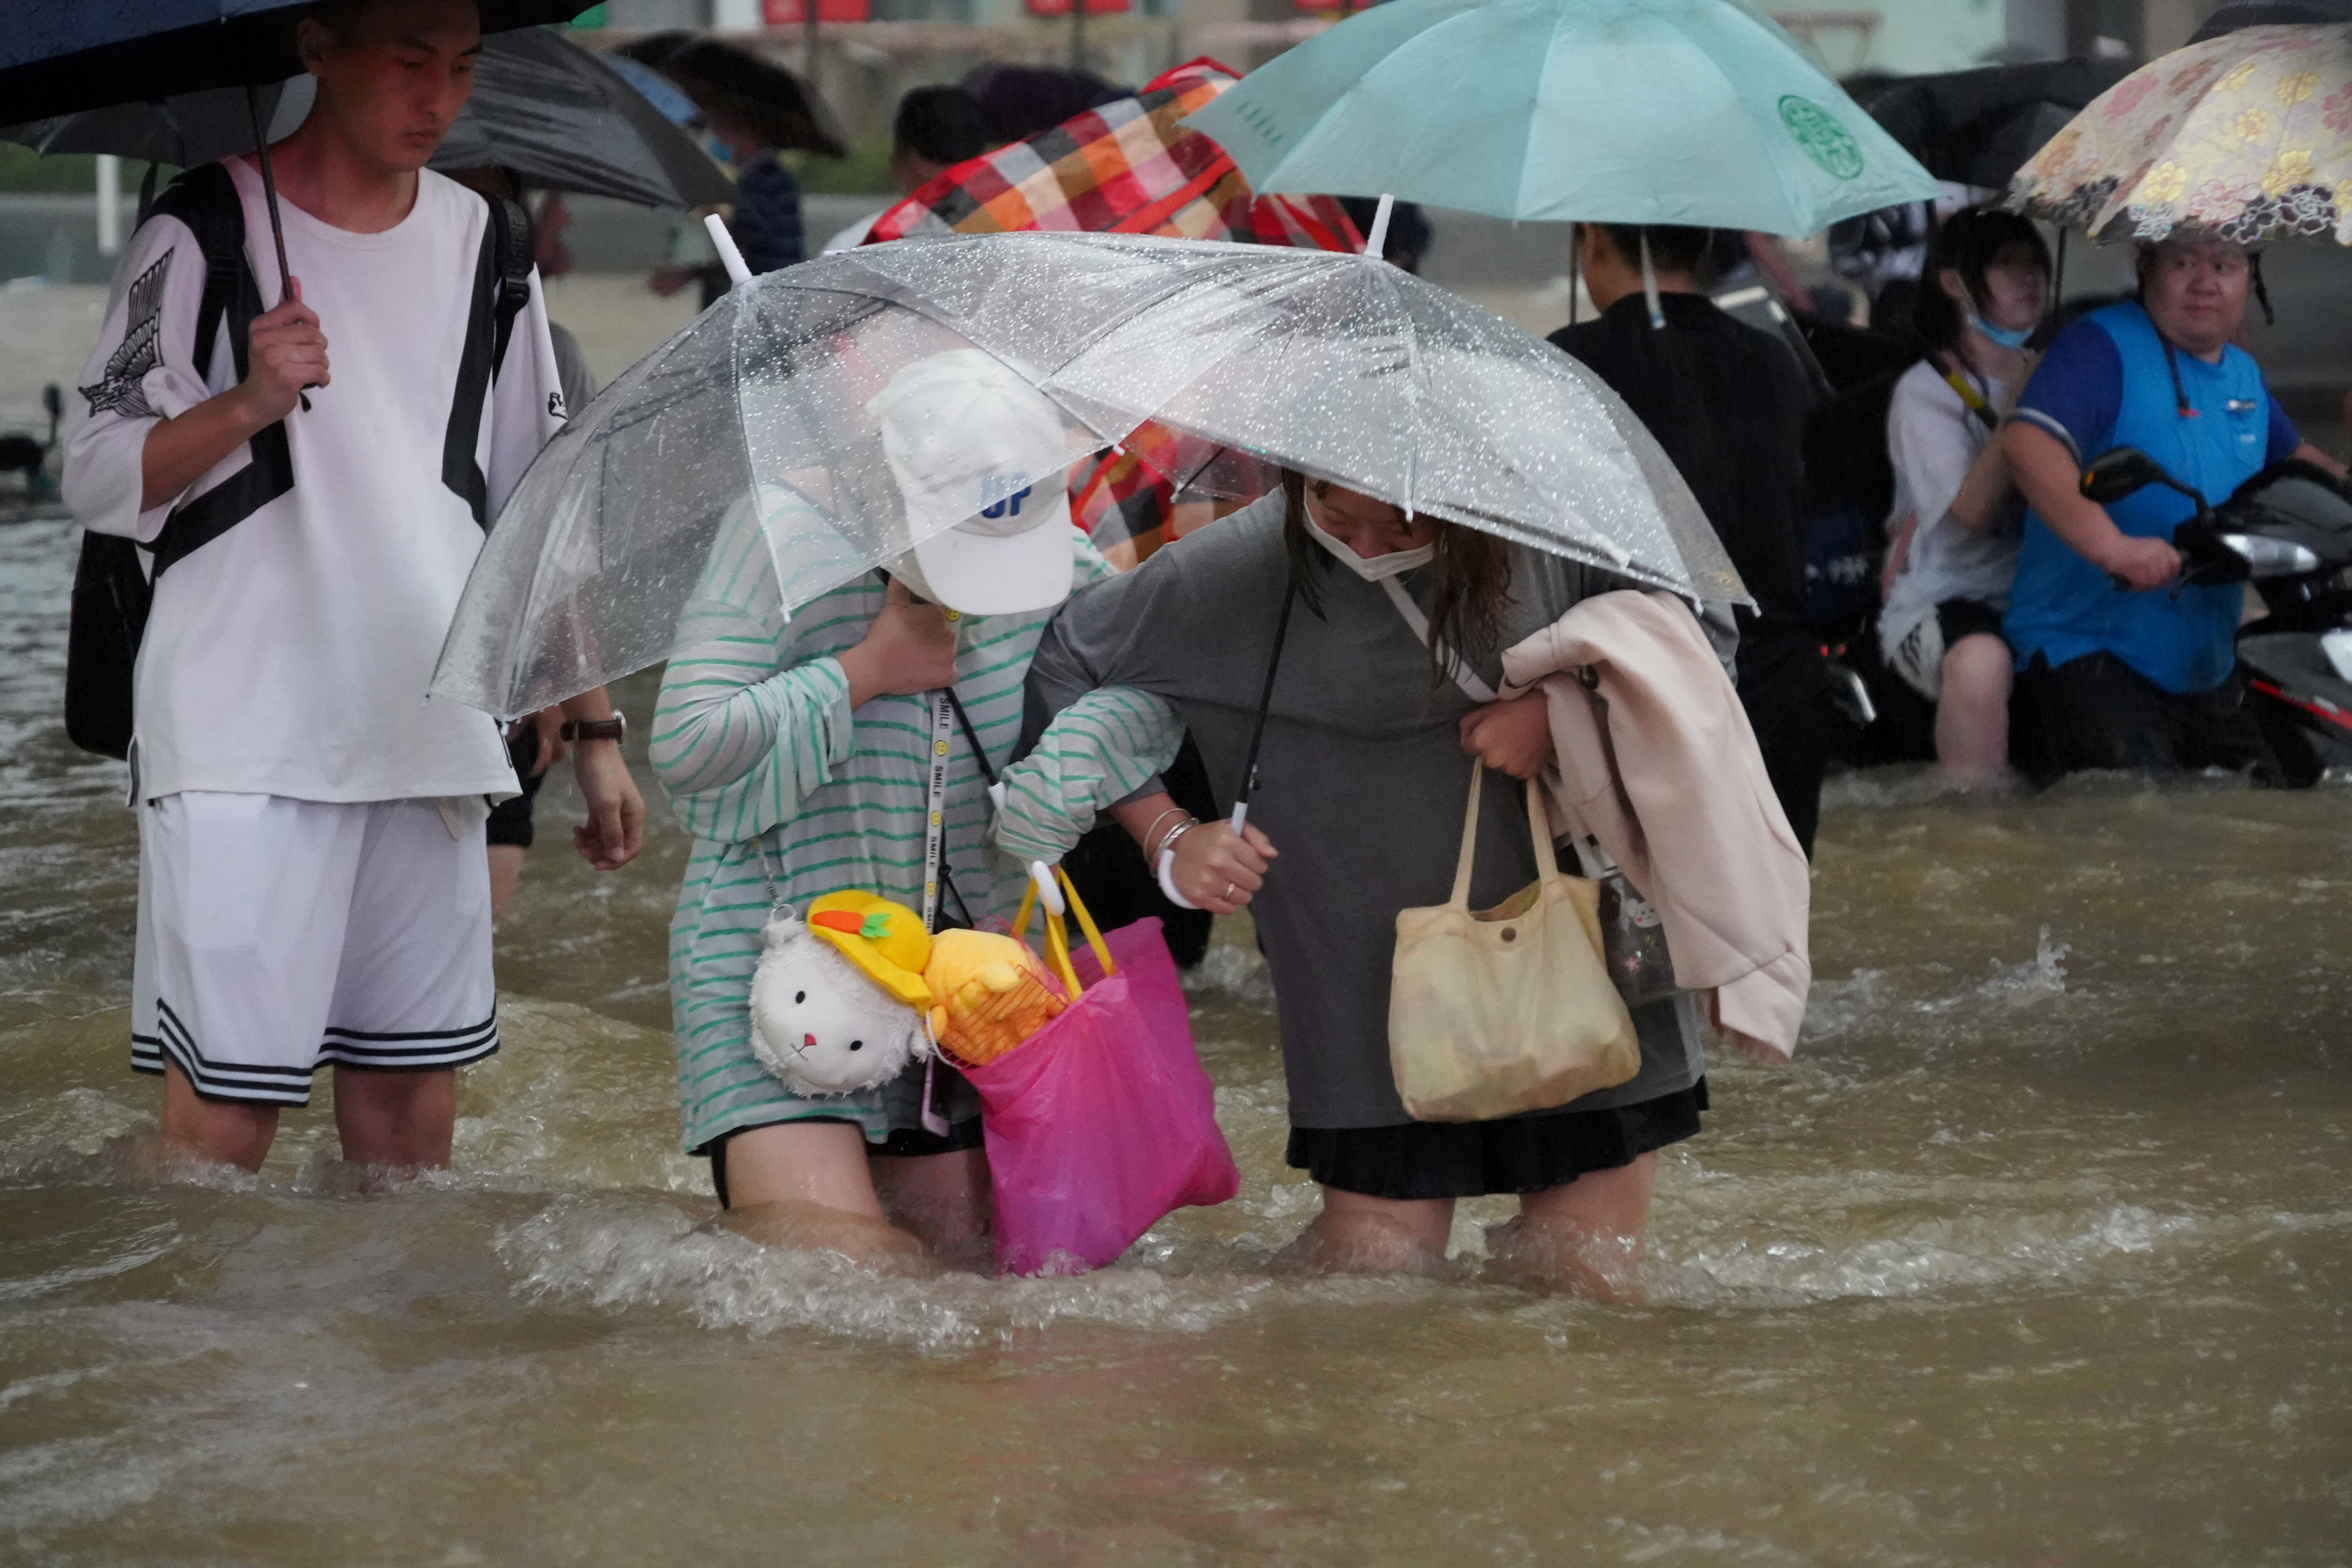 Residents, holding umbrellas amid heavy rainfall, wade through floodwaters on a road in Zhengzhou, Henan province, July 20. cnsphoto via REUTERS/File Photo